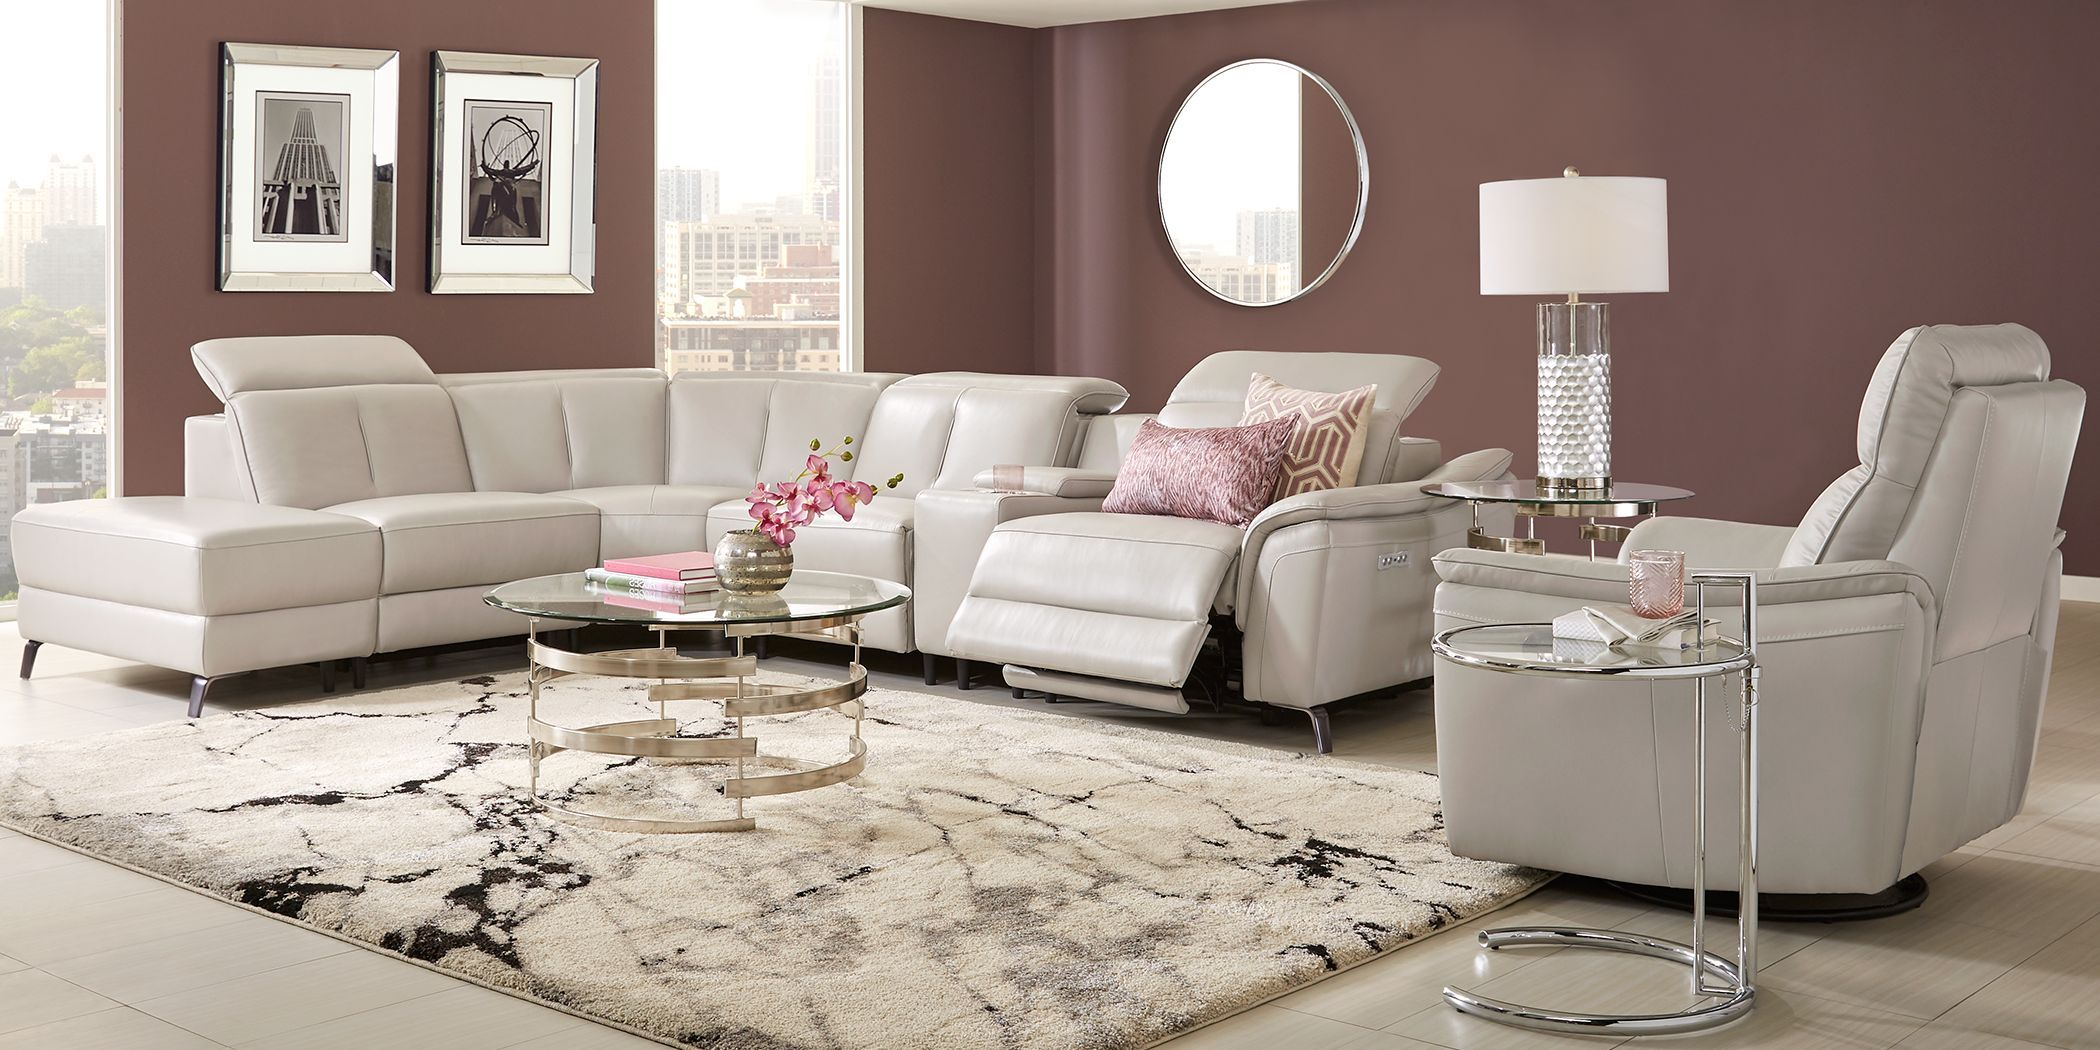 90 Lovely Living Spaces Ideas In 2020 Rooms To Go Living Spaces Living Room #rooms #to #go #living #room #suit